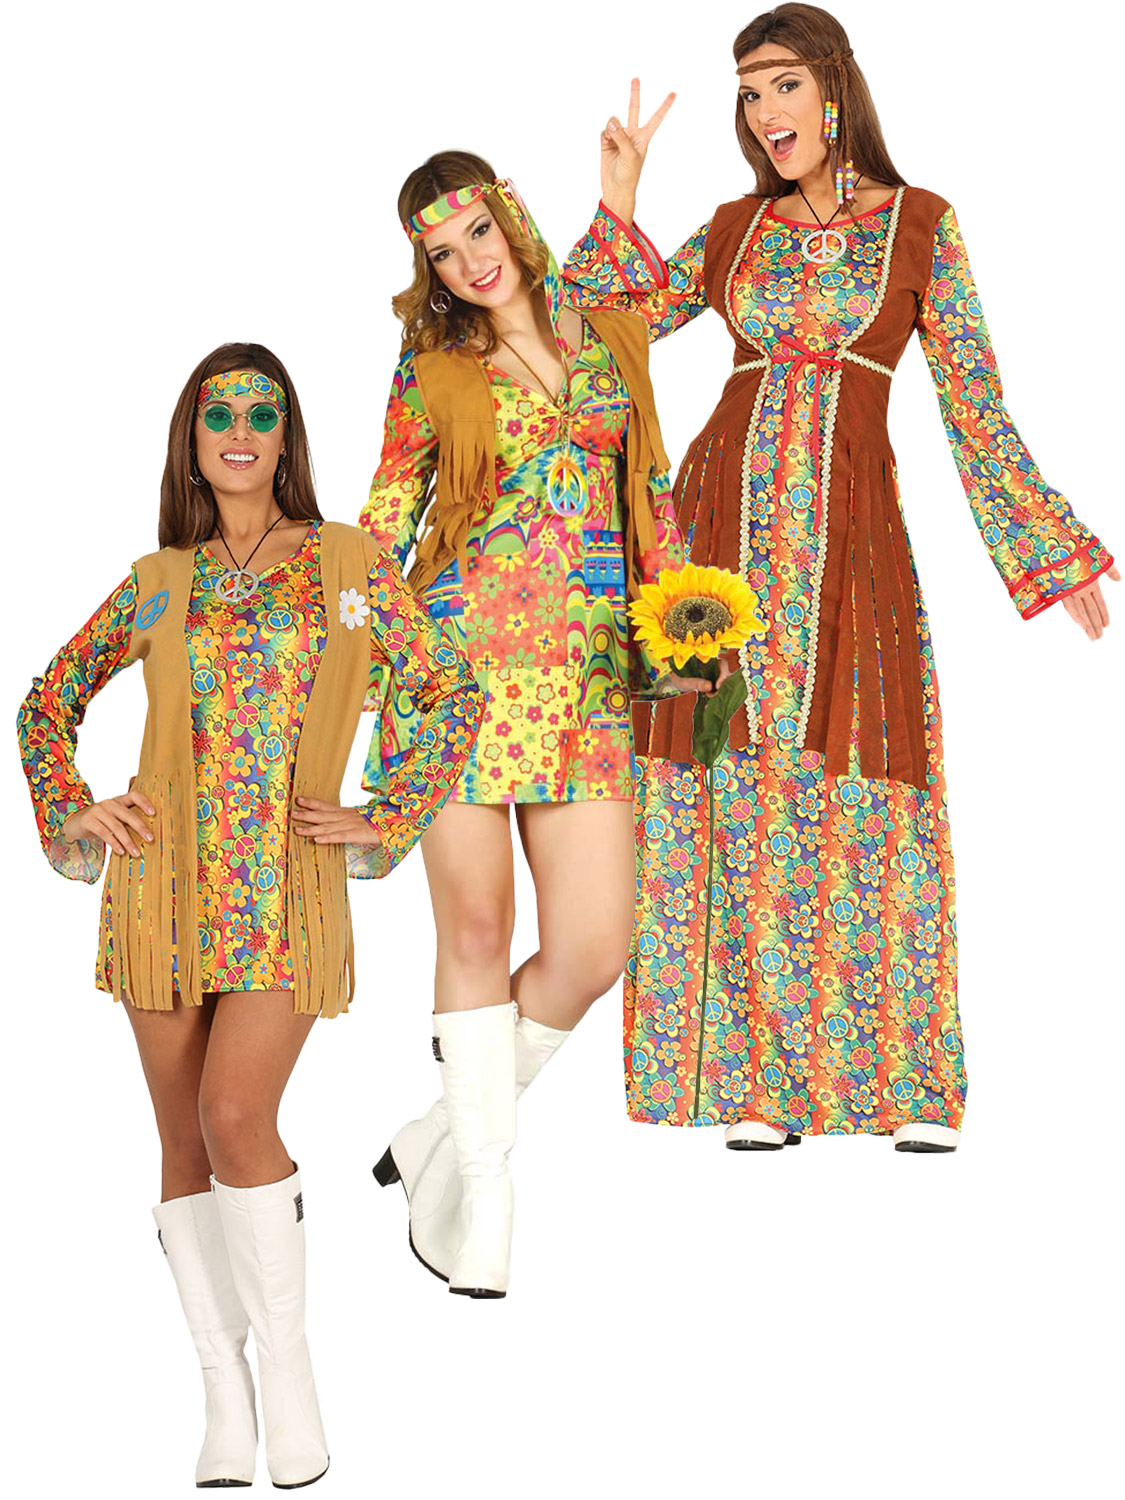 Details about Ladies Hippy Costume Adults 60s 70s Hippie Fancy Dress Womens 1960s 1970s Outfit